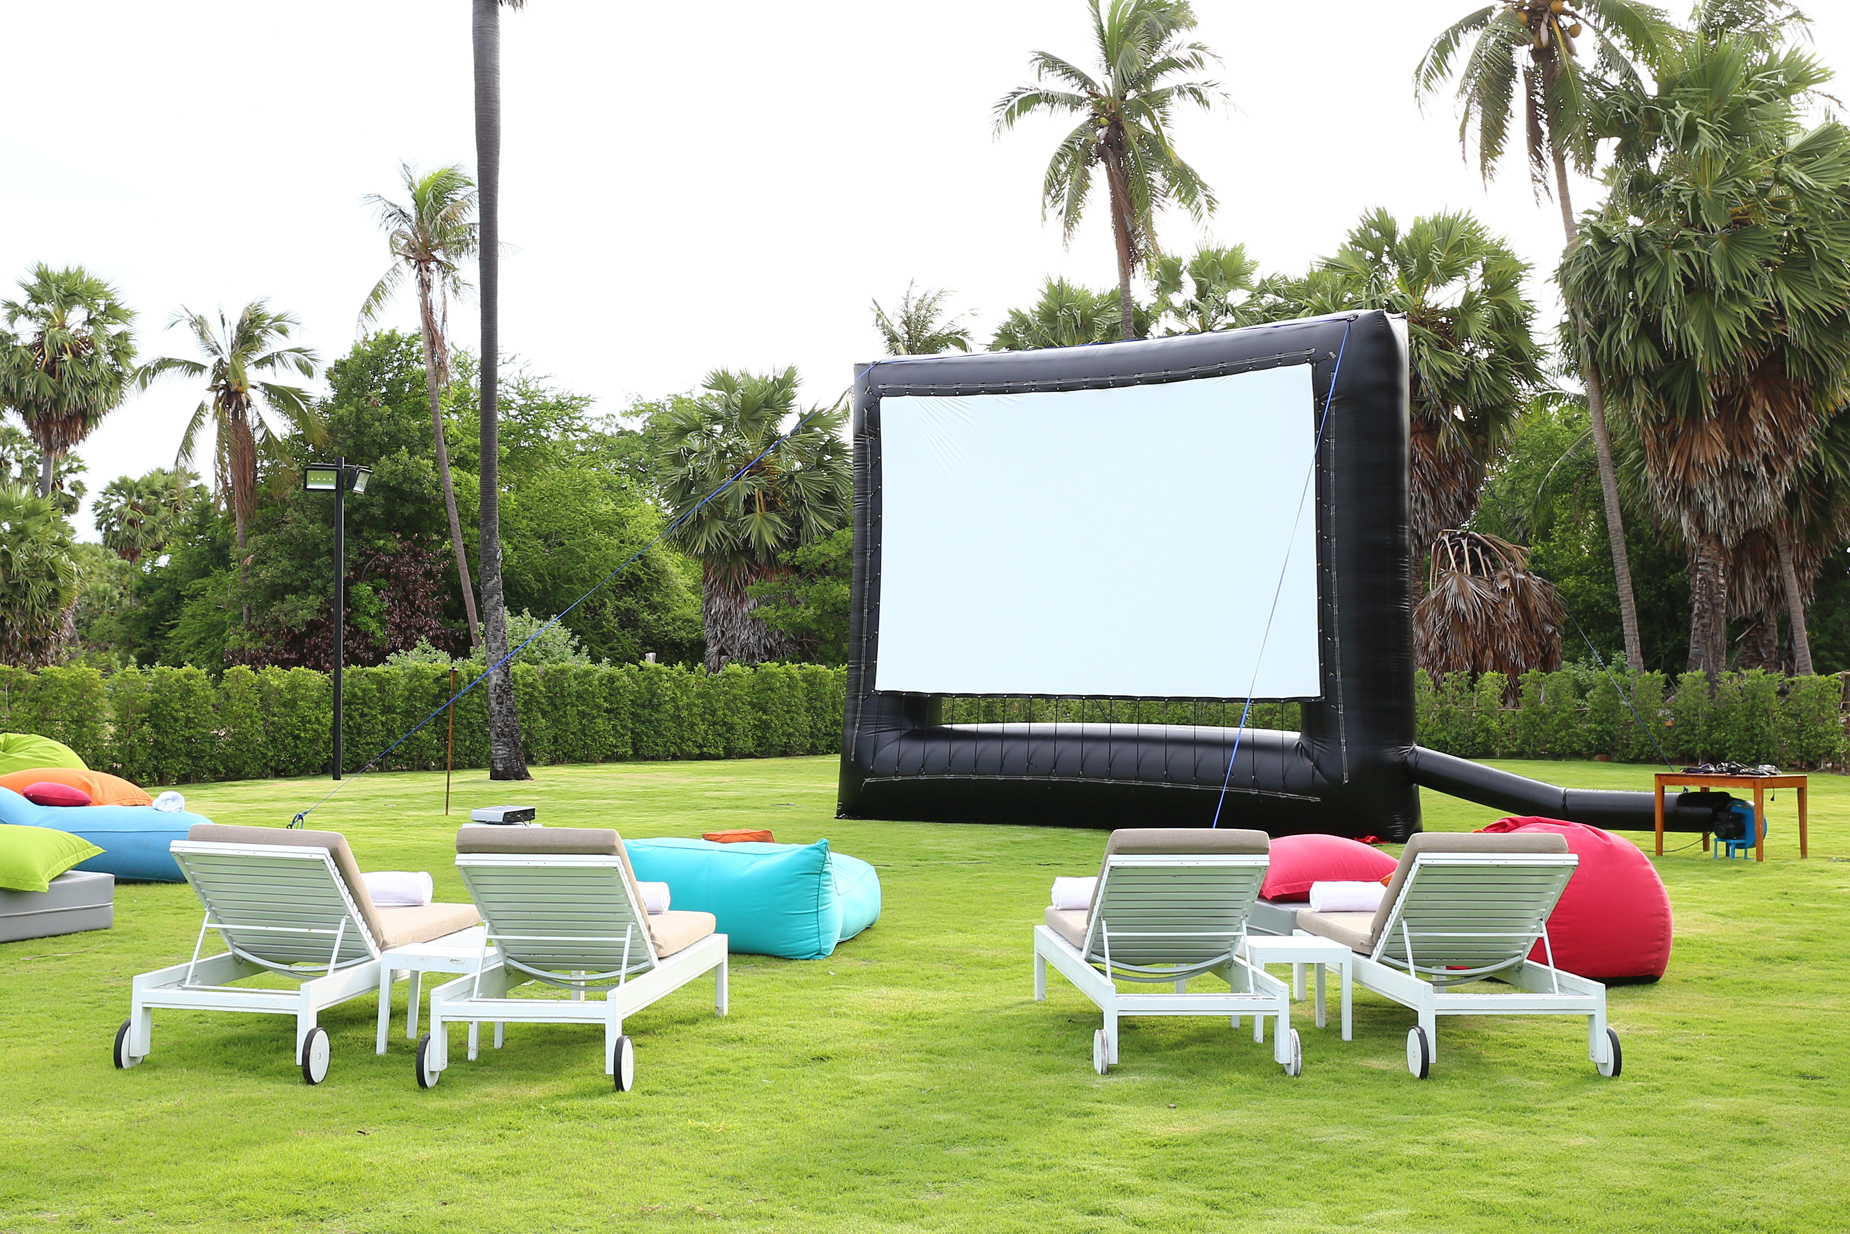 Revealed: How To Set Up An Outdoor Home Theatre Experience